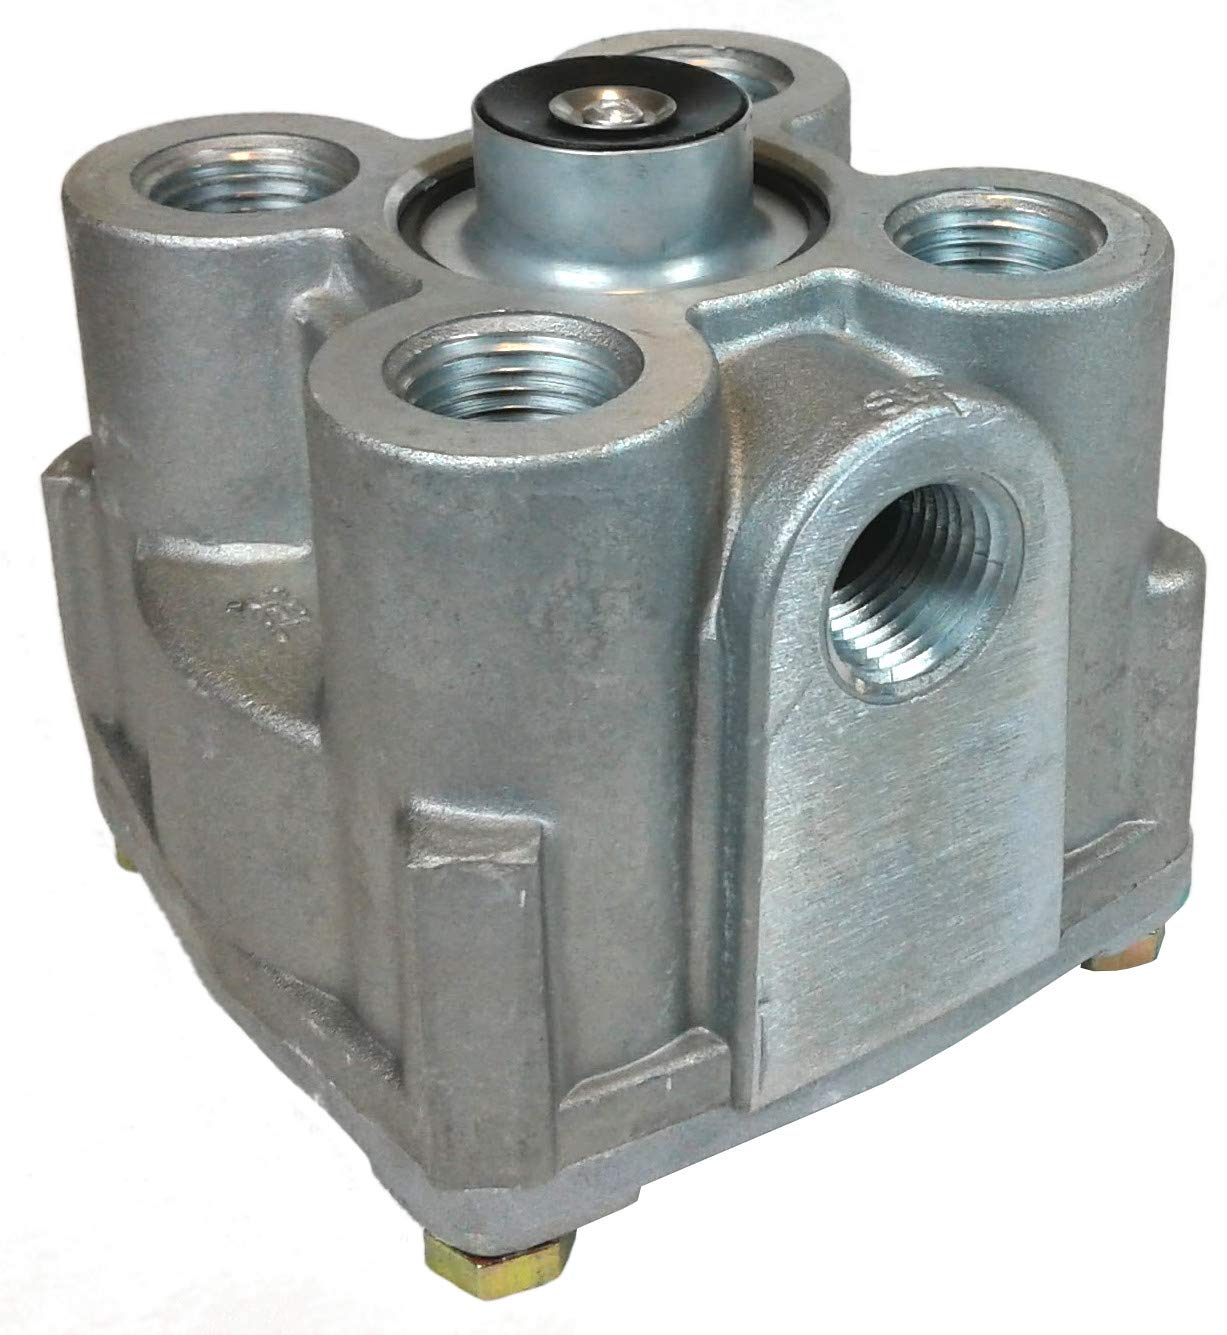 R-12 Air Brake Relay Valve - Vertical Ports for Heavy Duty Big Rigs